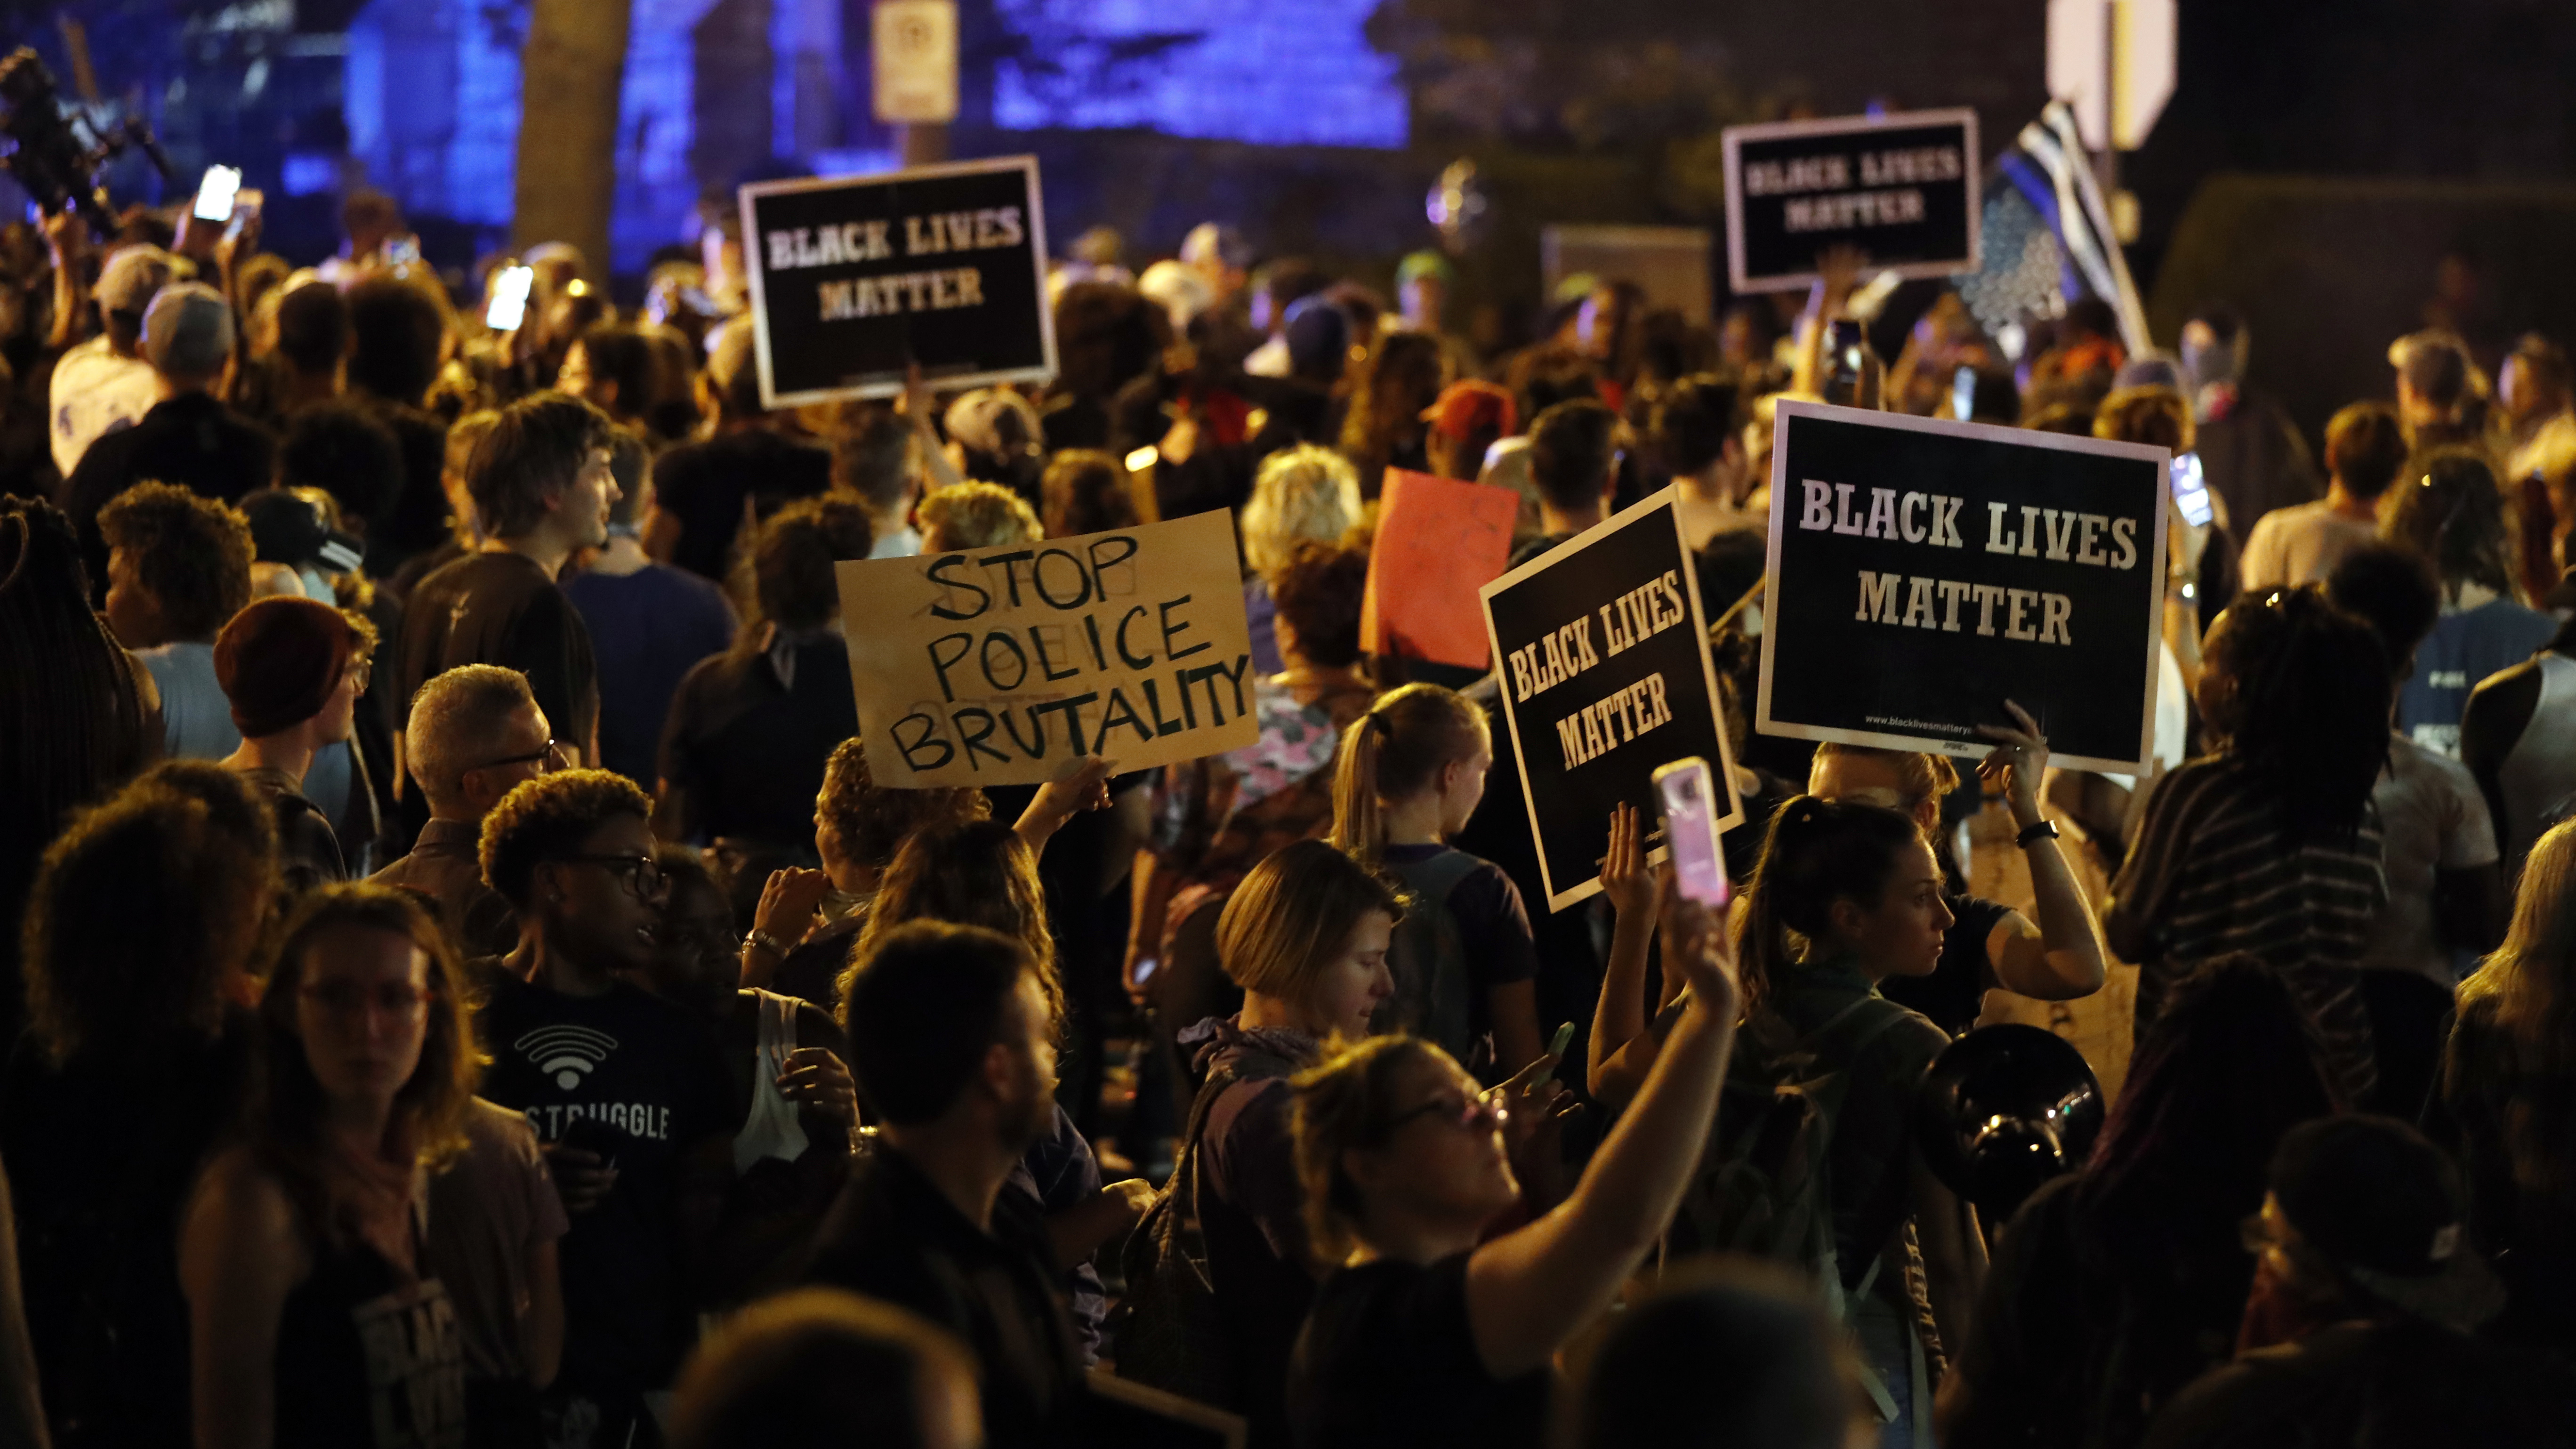 Protests In St. Louis After Ex-Cop Acquitted In Anthony Lamar Smith Murder Case